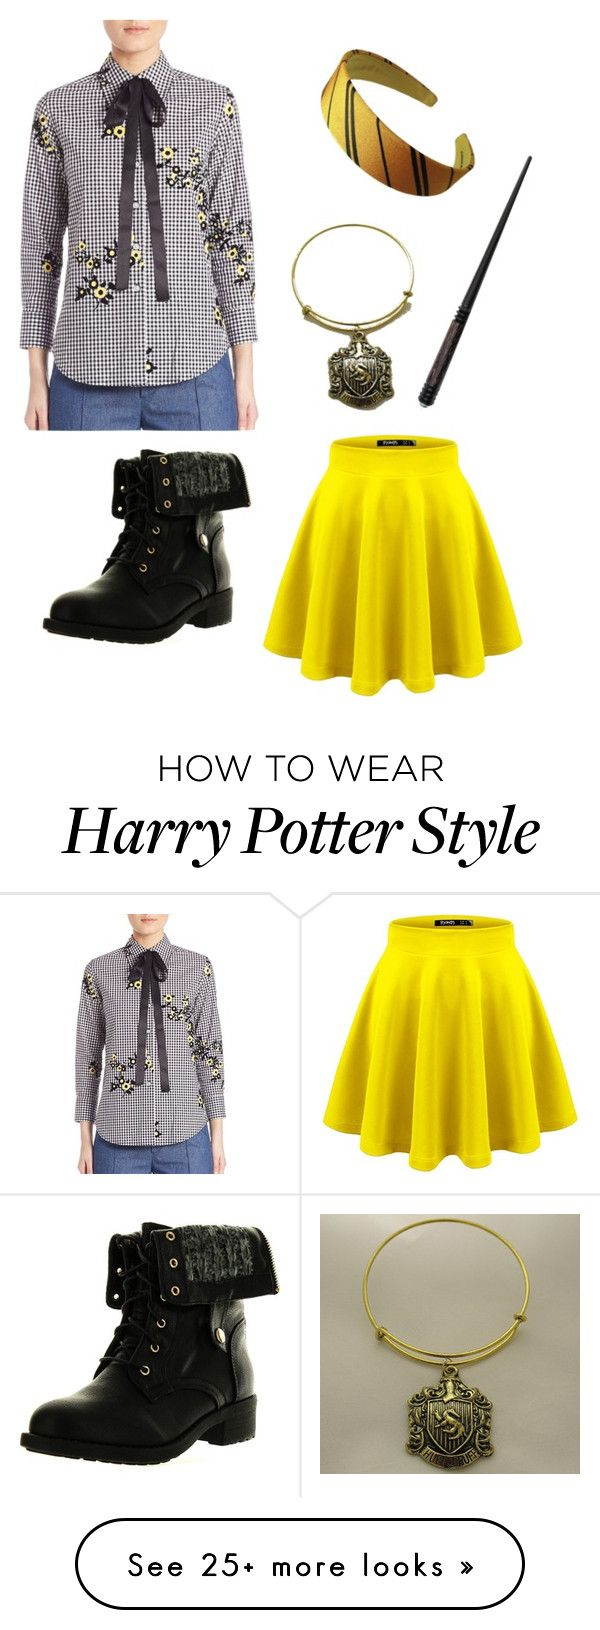 """""""Hufflepuff"""" by bandumb on Polyvore featuring Marc Jacobs, Refresh, harrypotter, hogwarts and Hufflepuff"""